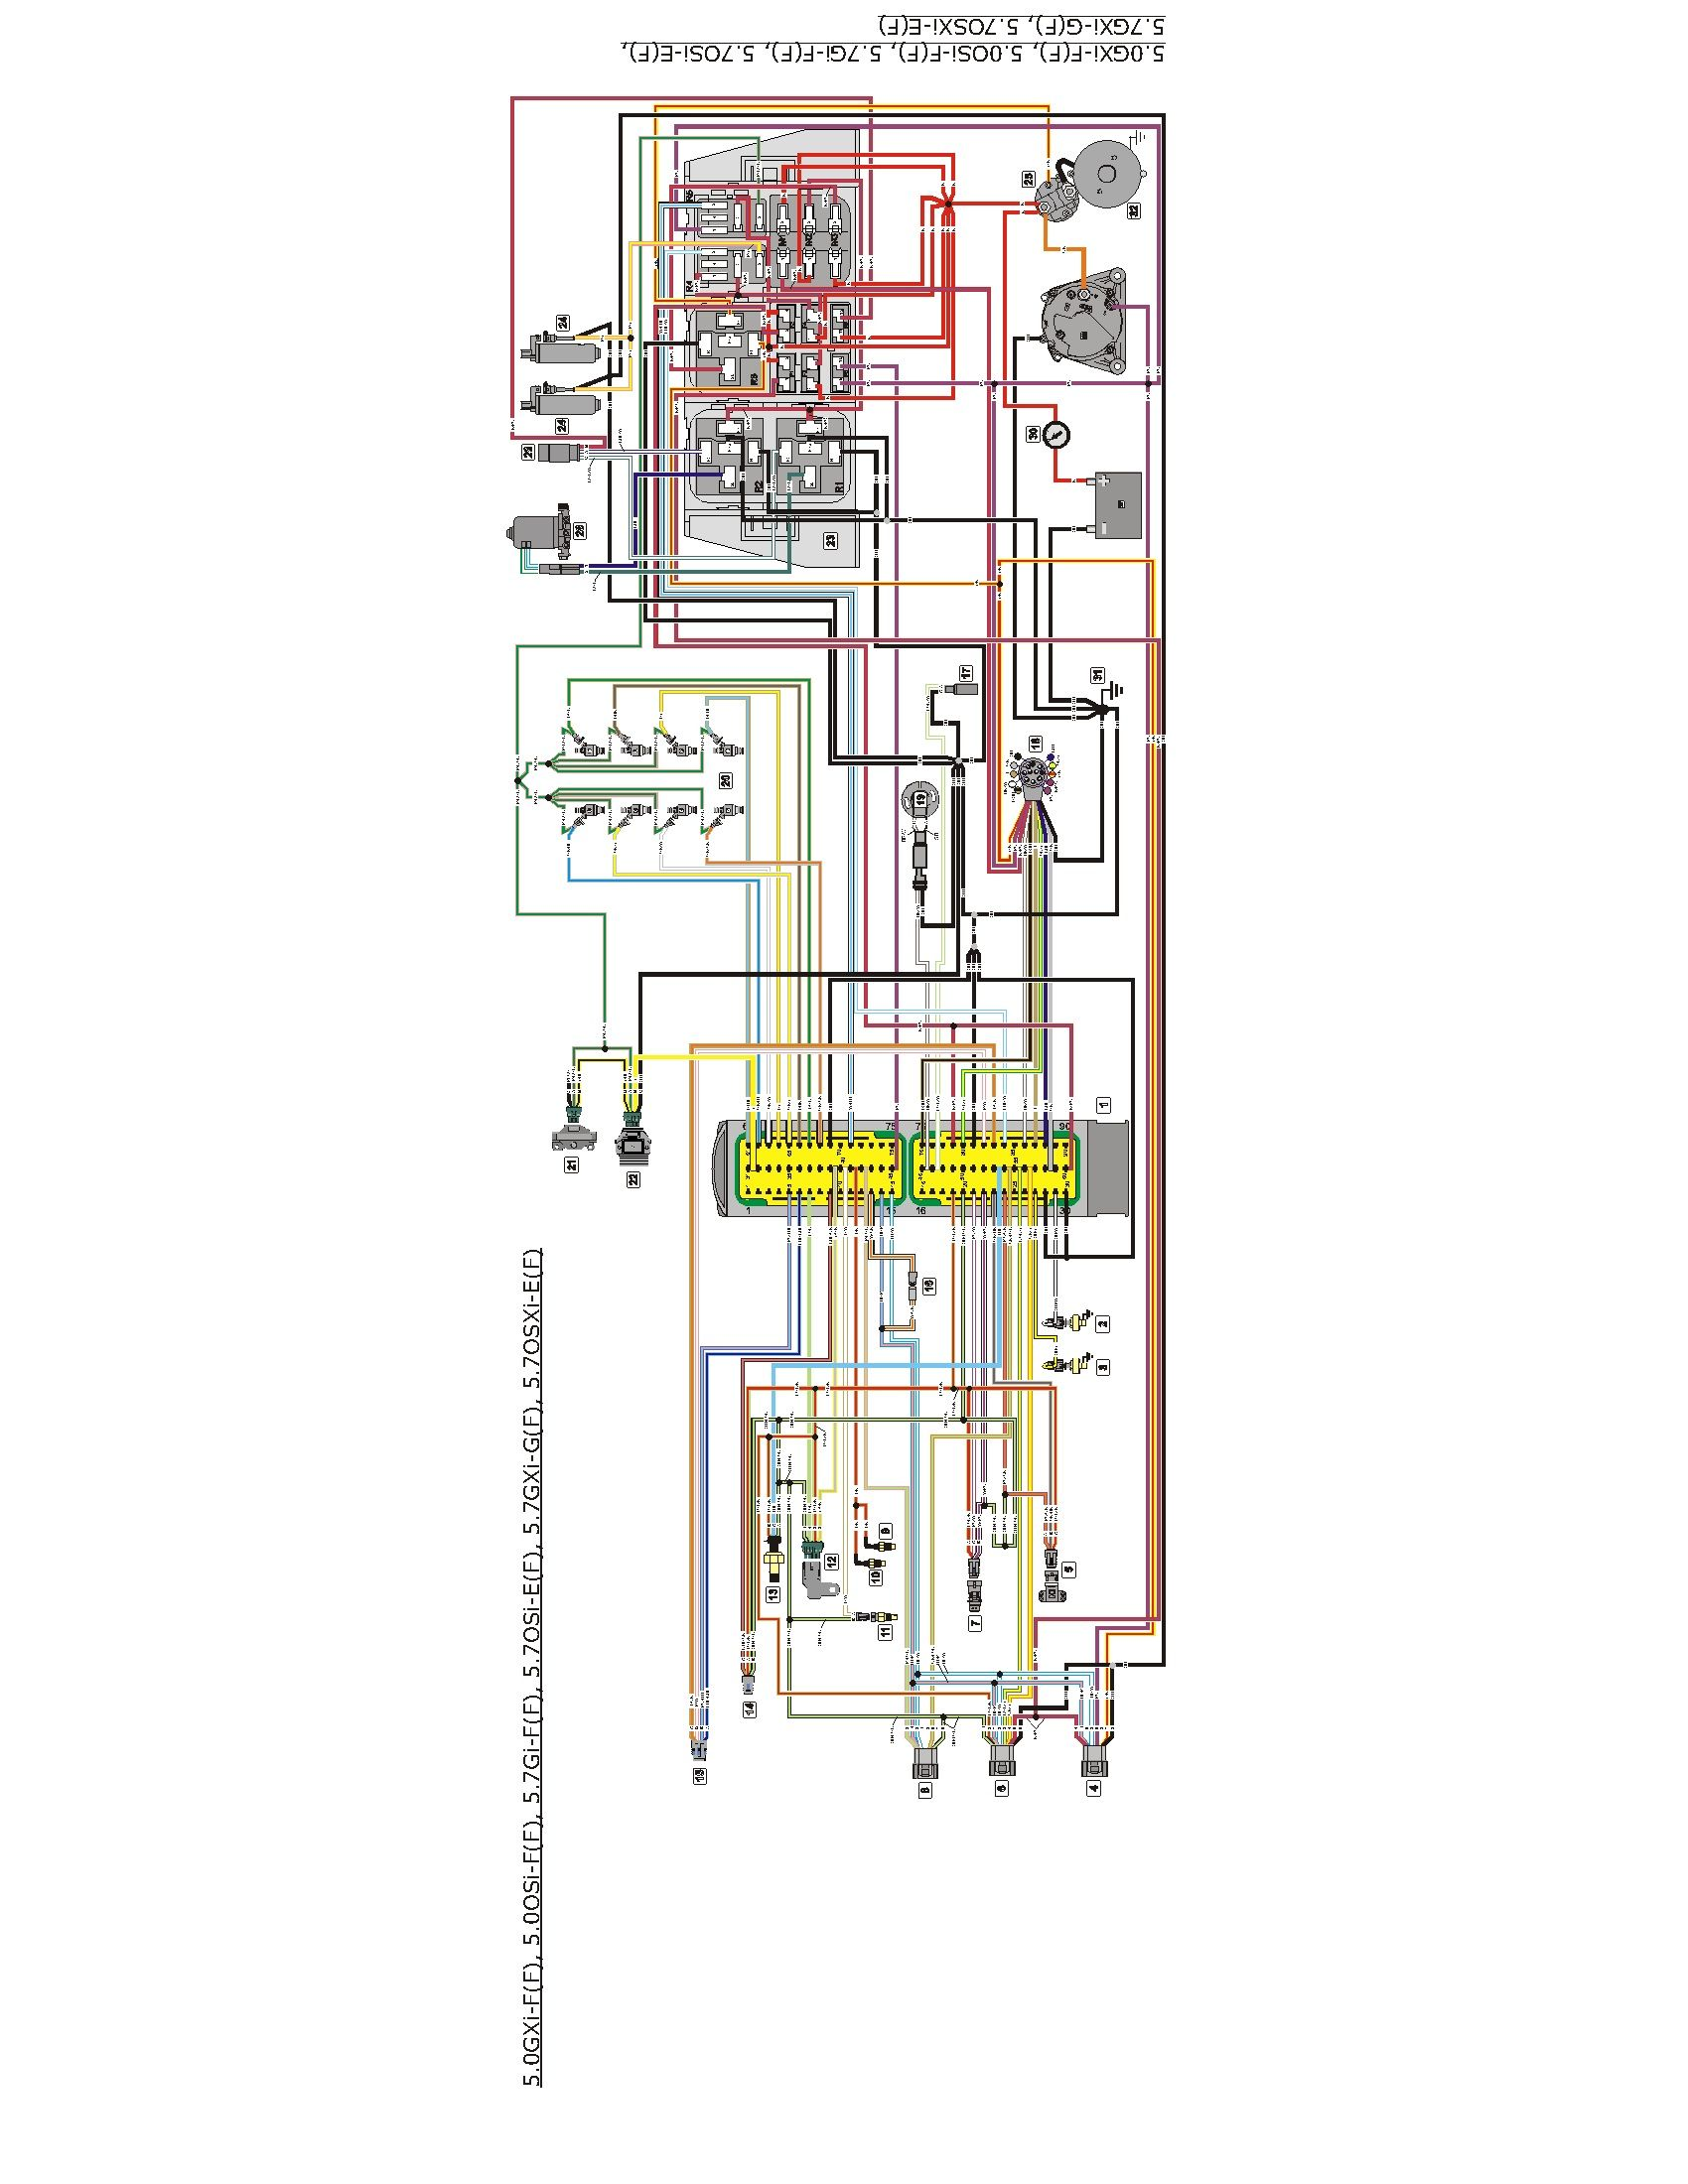 hight resolution of 1985 volvo alternator wiring everything wiring diagram 1985 volvo alternator wiring